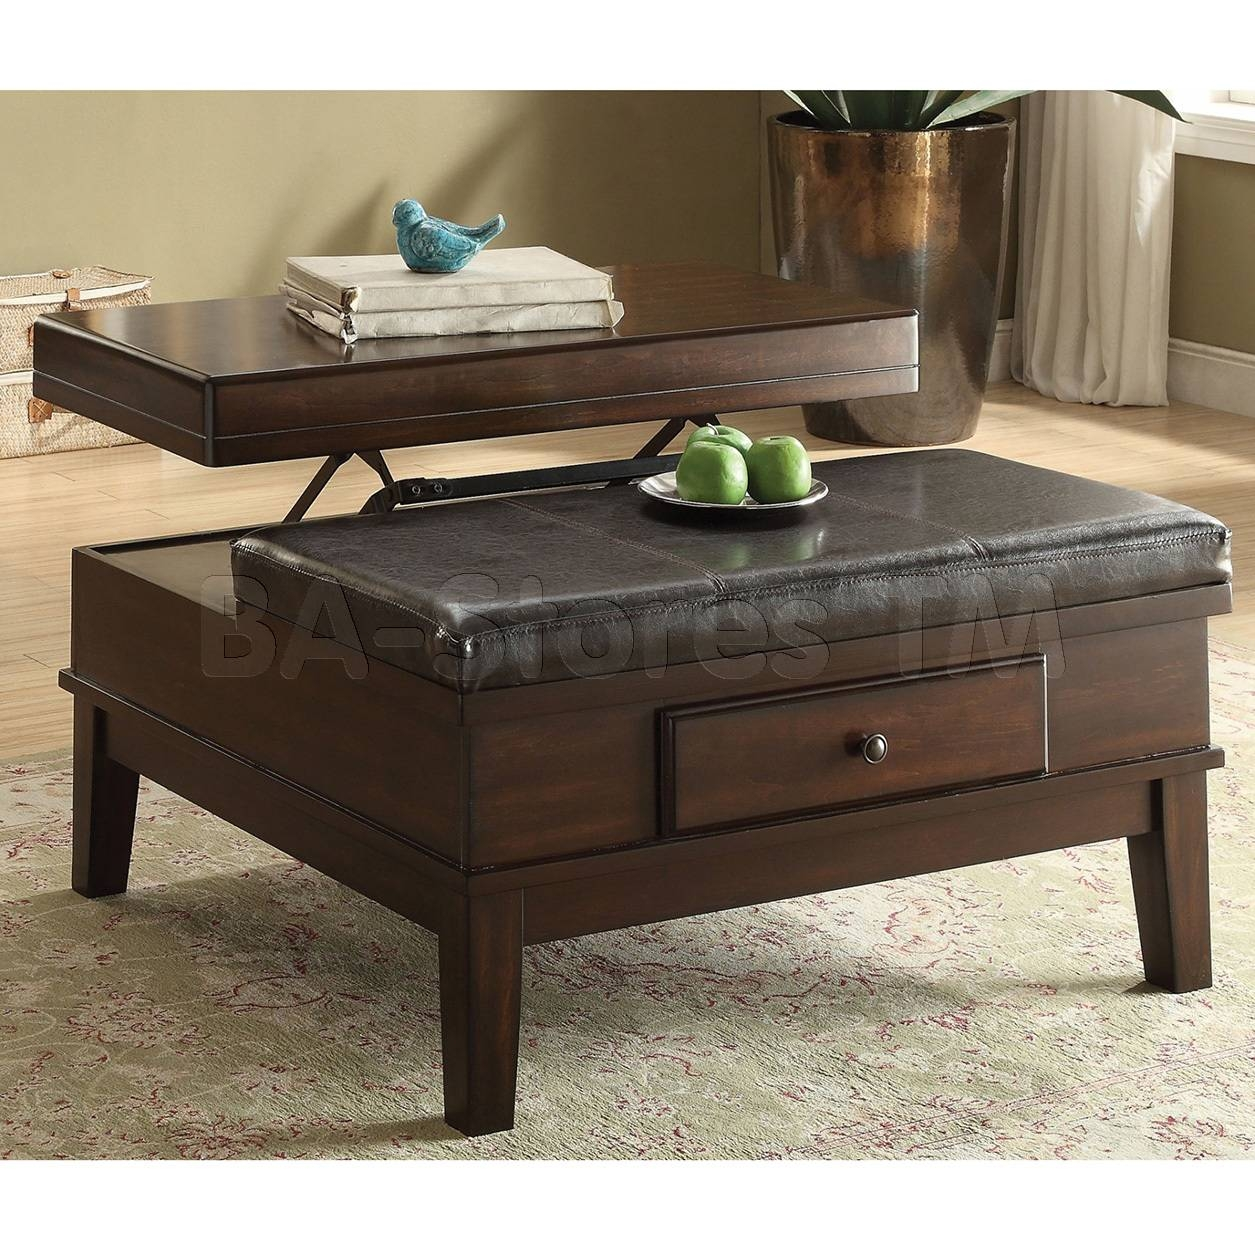 Quality Lift Top Coffee Table Chicago Furniture Warehouse Buy regarding Waverly Lift Top Coffee Tables (Image 21 of 30)